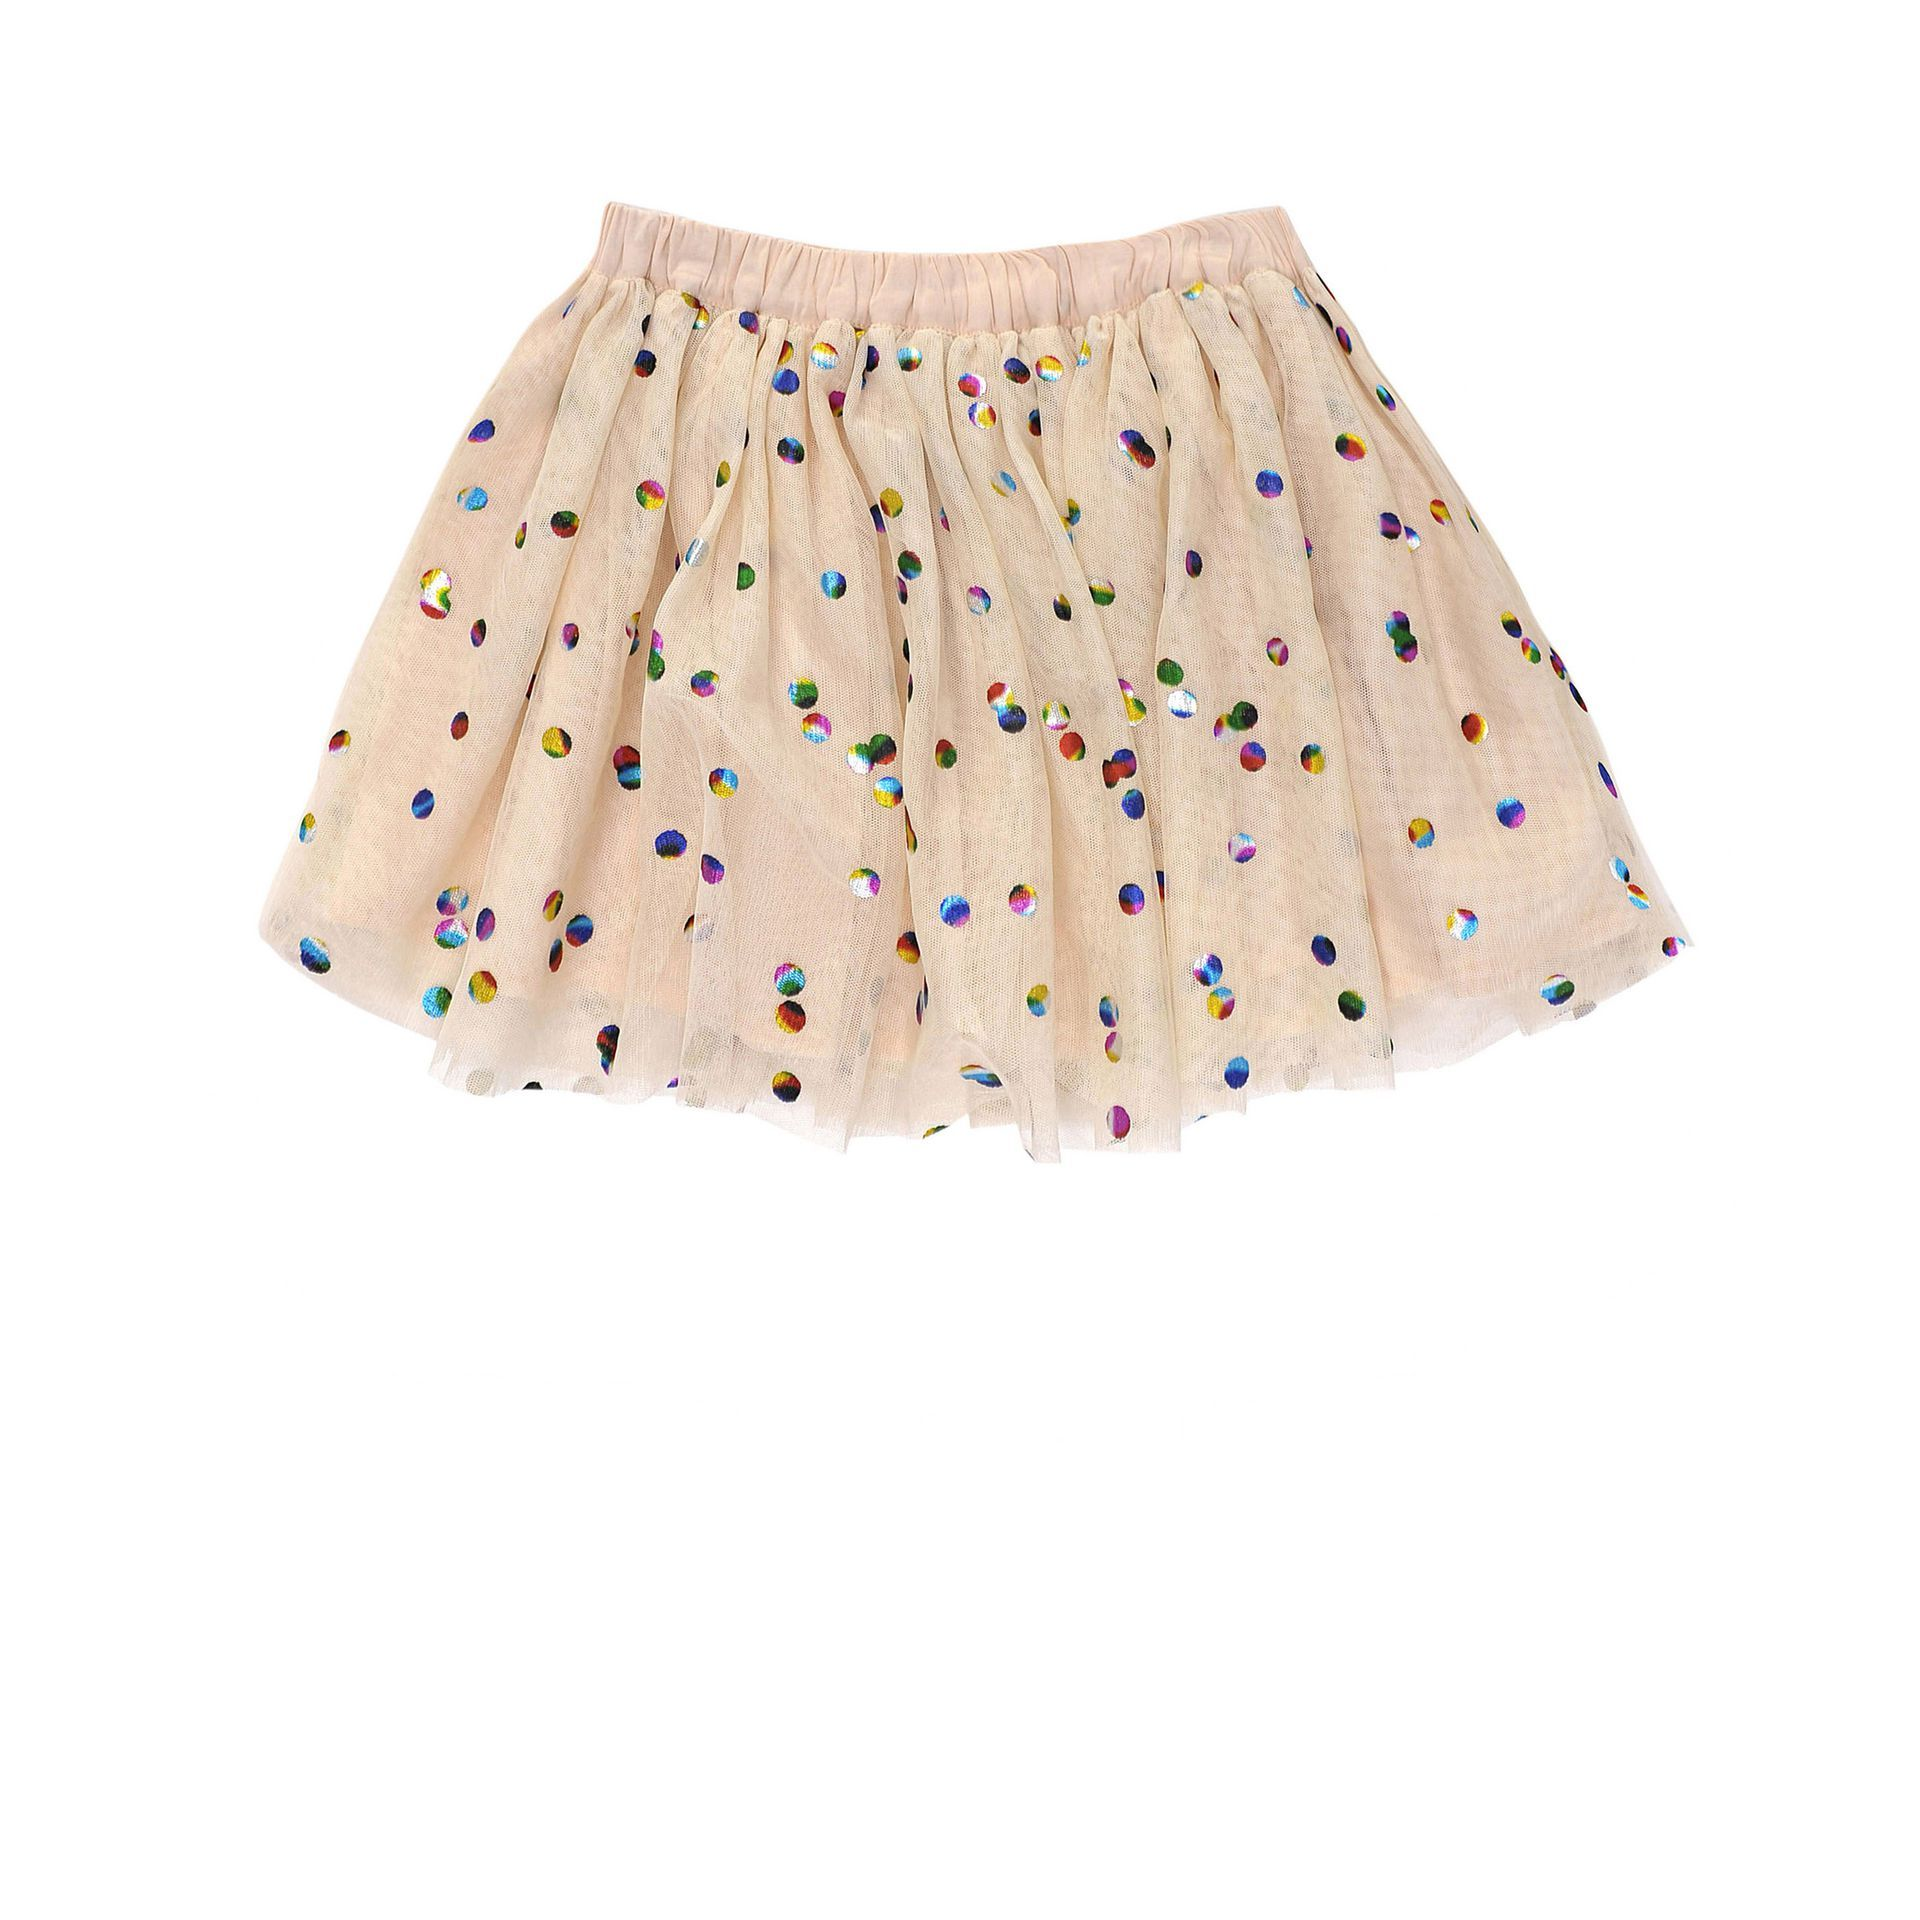 HONEY PARTY SKIRT $ 80.00